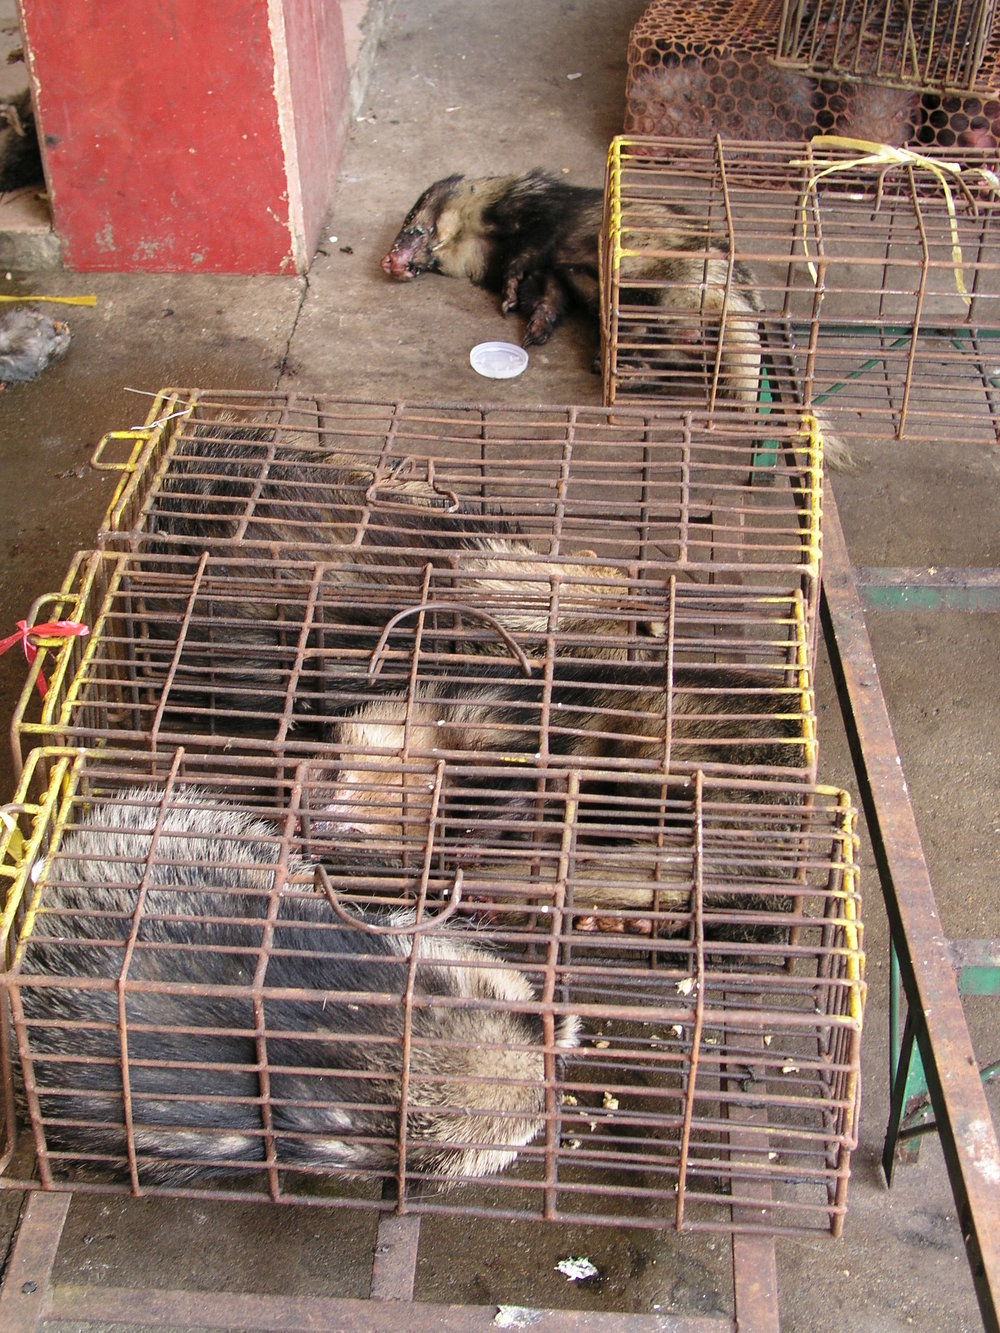 Chau Tau Market in Guangzhou where the SARS epidemic started from live civets .3.JPG